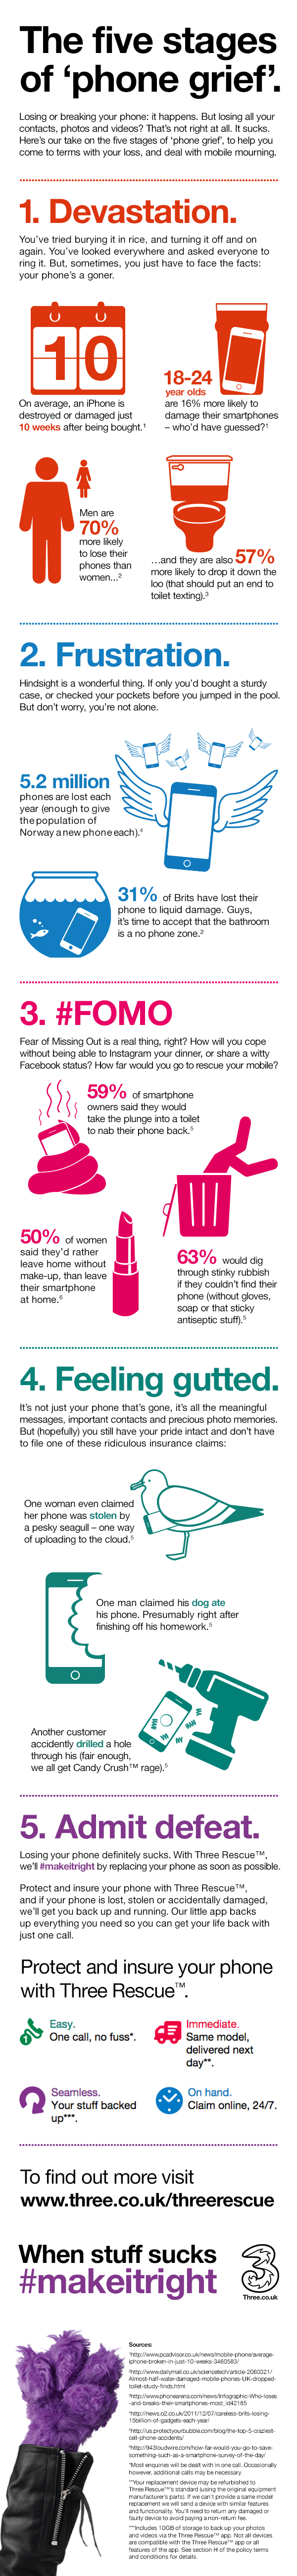 The Five Stages of Phone Grief infographic by Three.co.uk